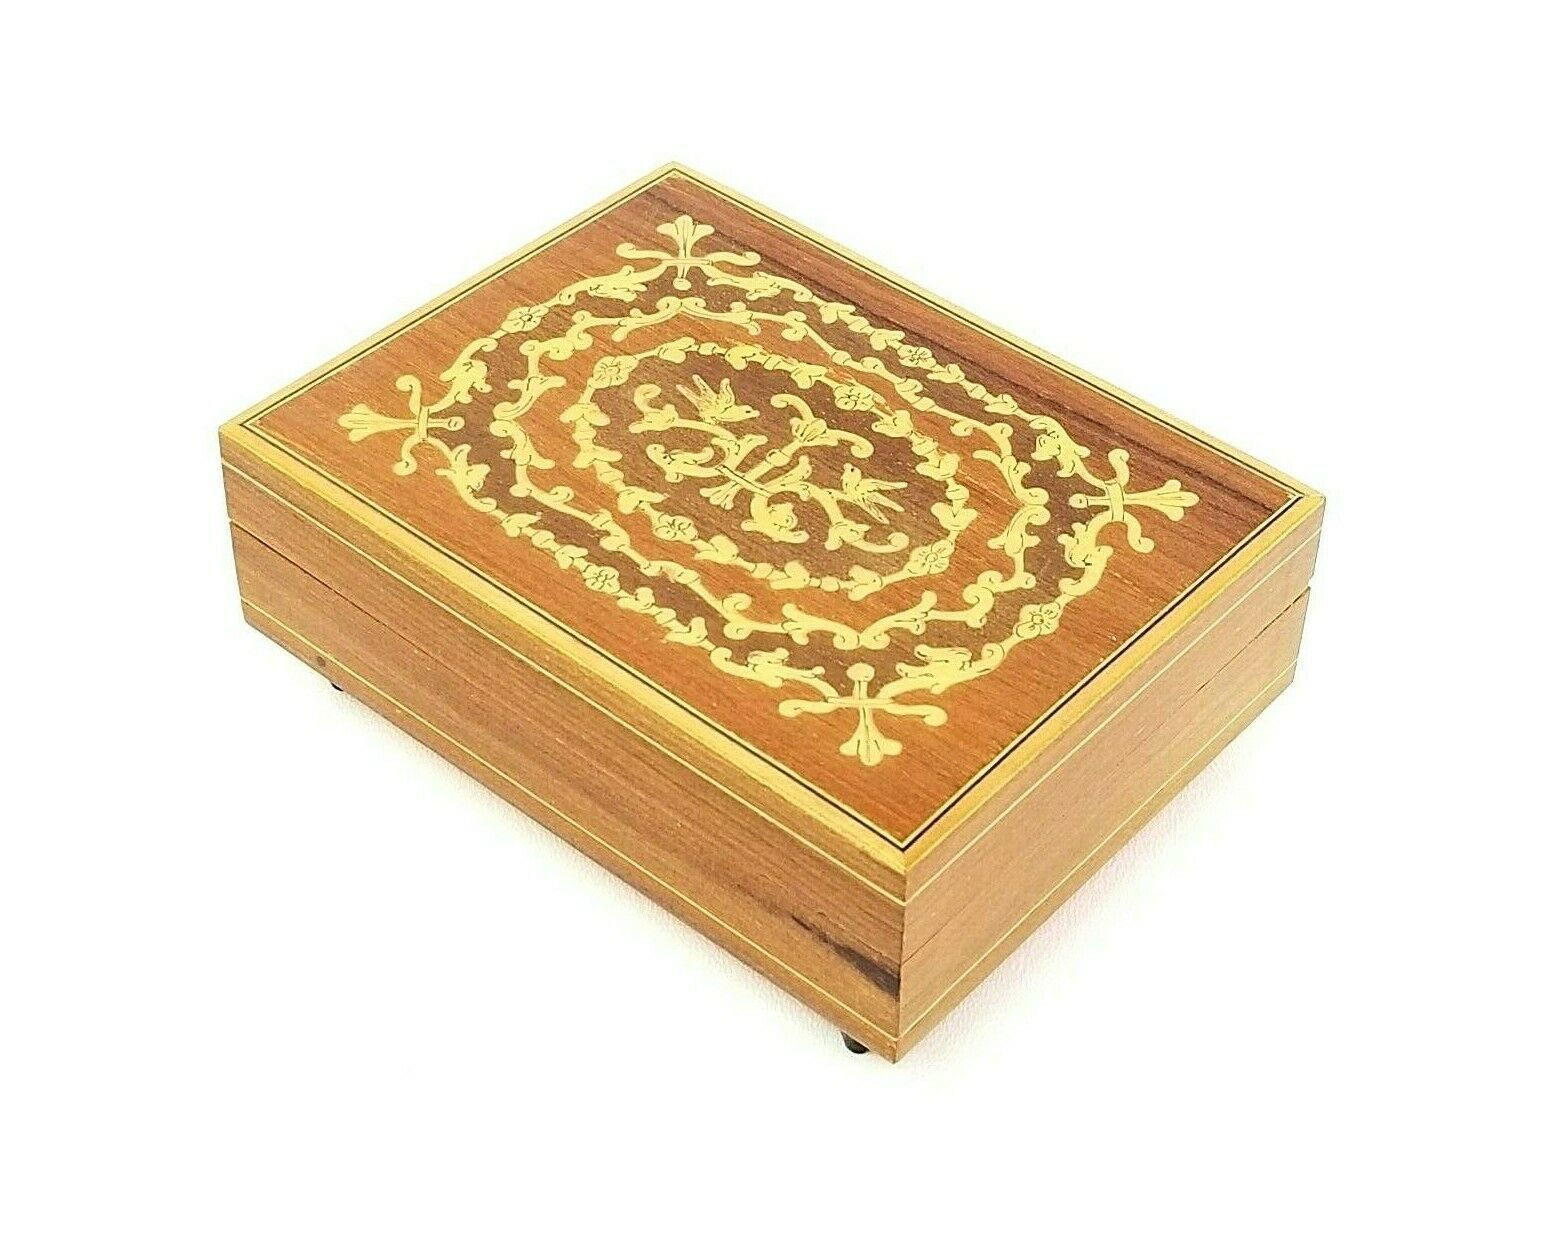 Vintage Reuge Swiss Movement Music Box Torna A Surriento Wood Inlay Jewelry Box